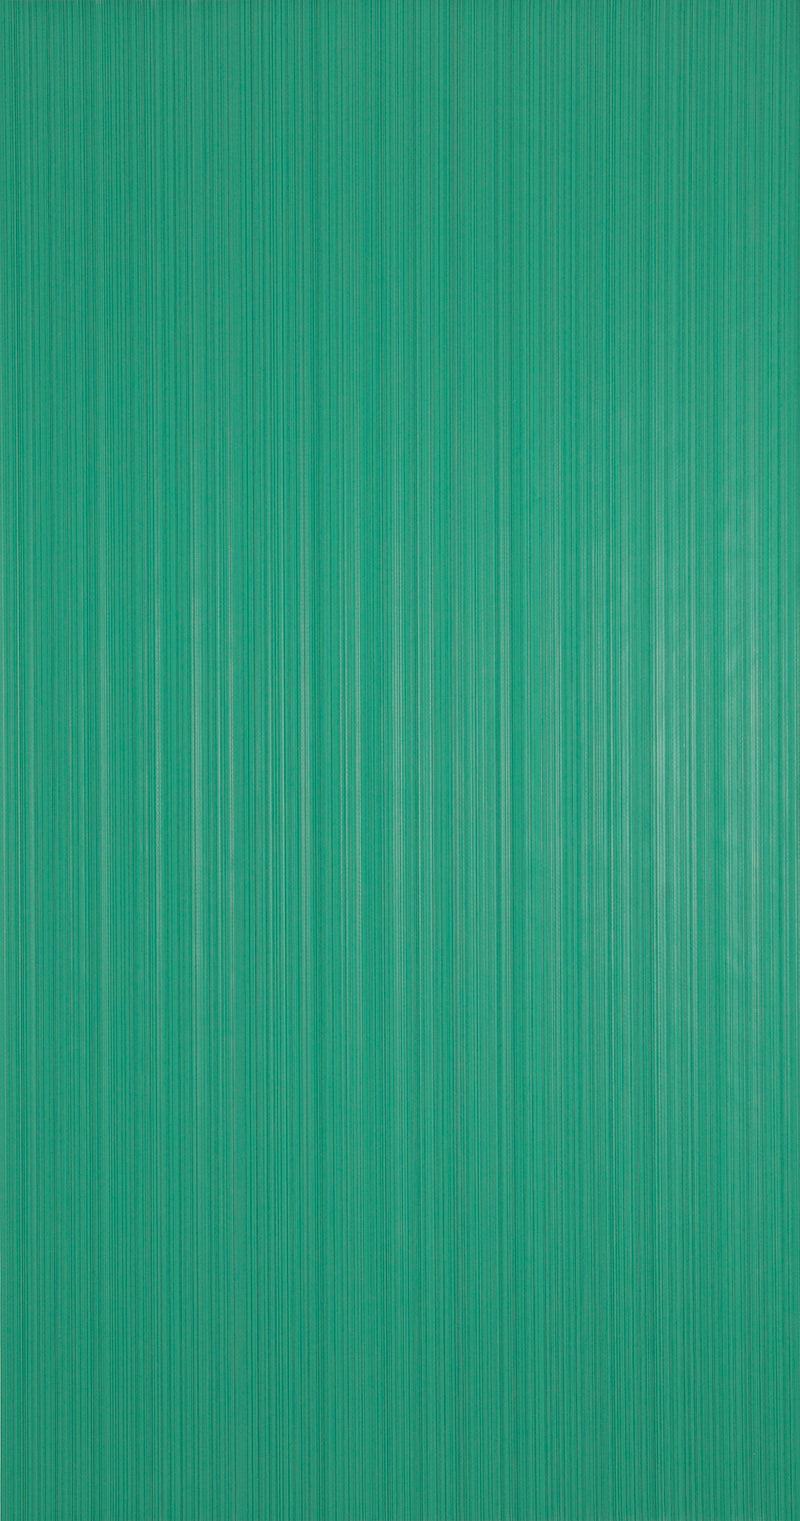 Green Textured Wallpaper C7202 | Commercial, Hospitality & Hotel Lobby